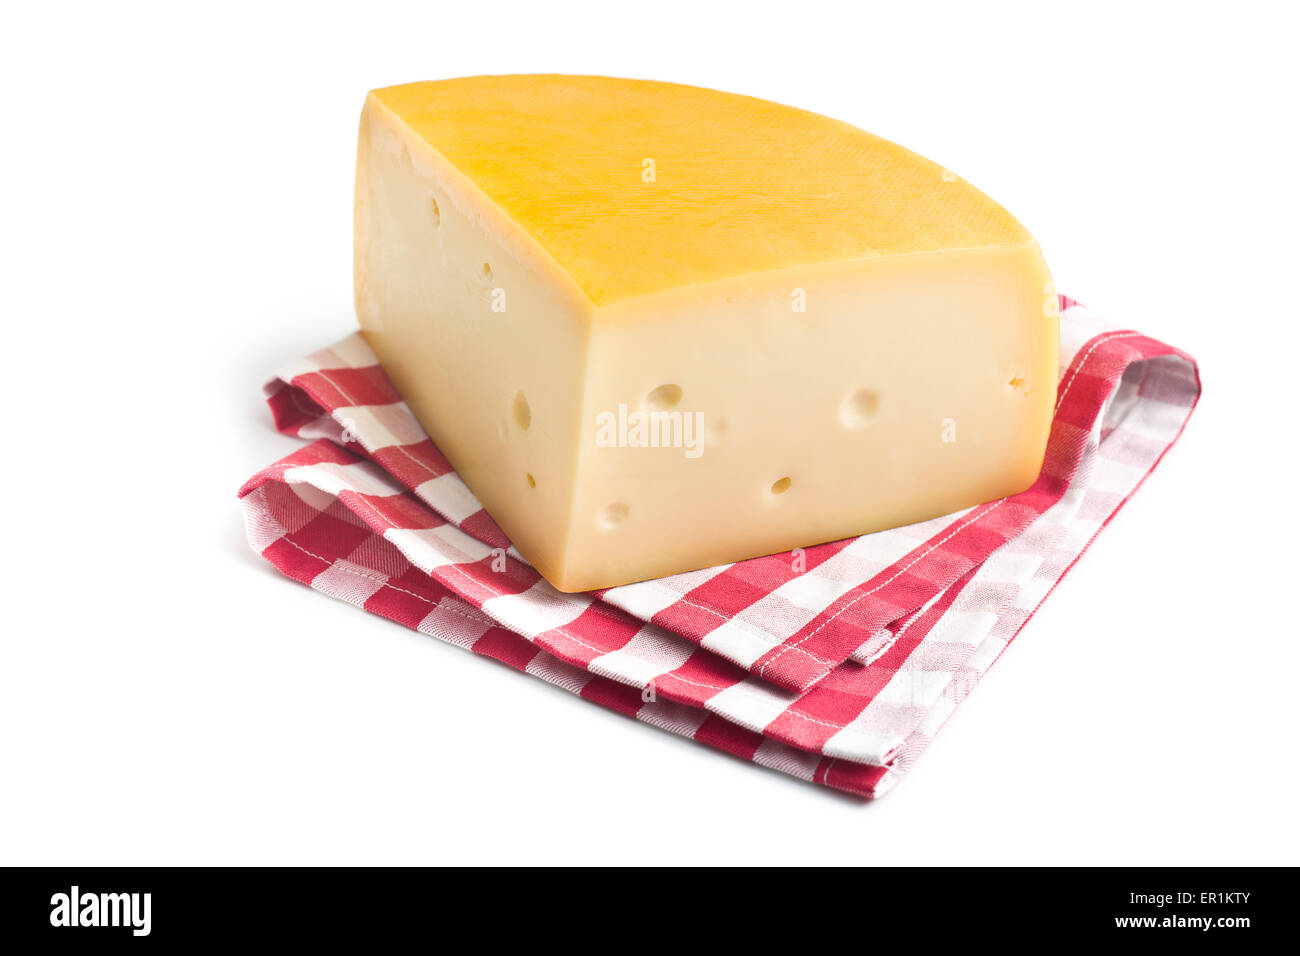 the edam cheese on checkered napkin - Stock Image